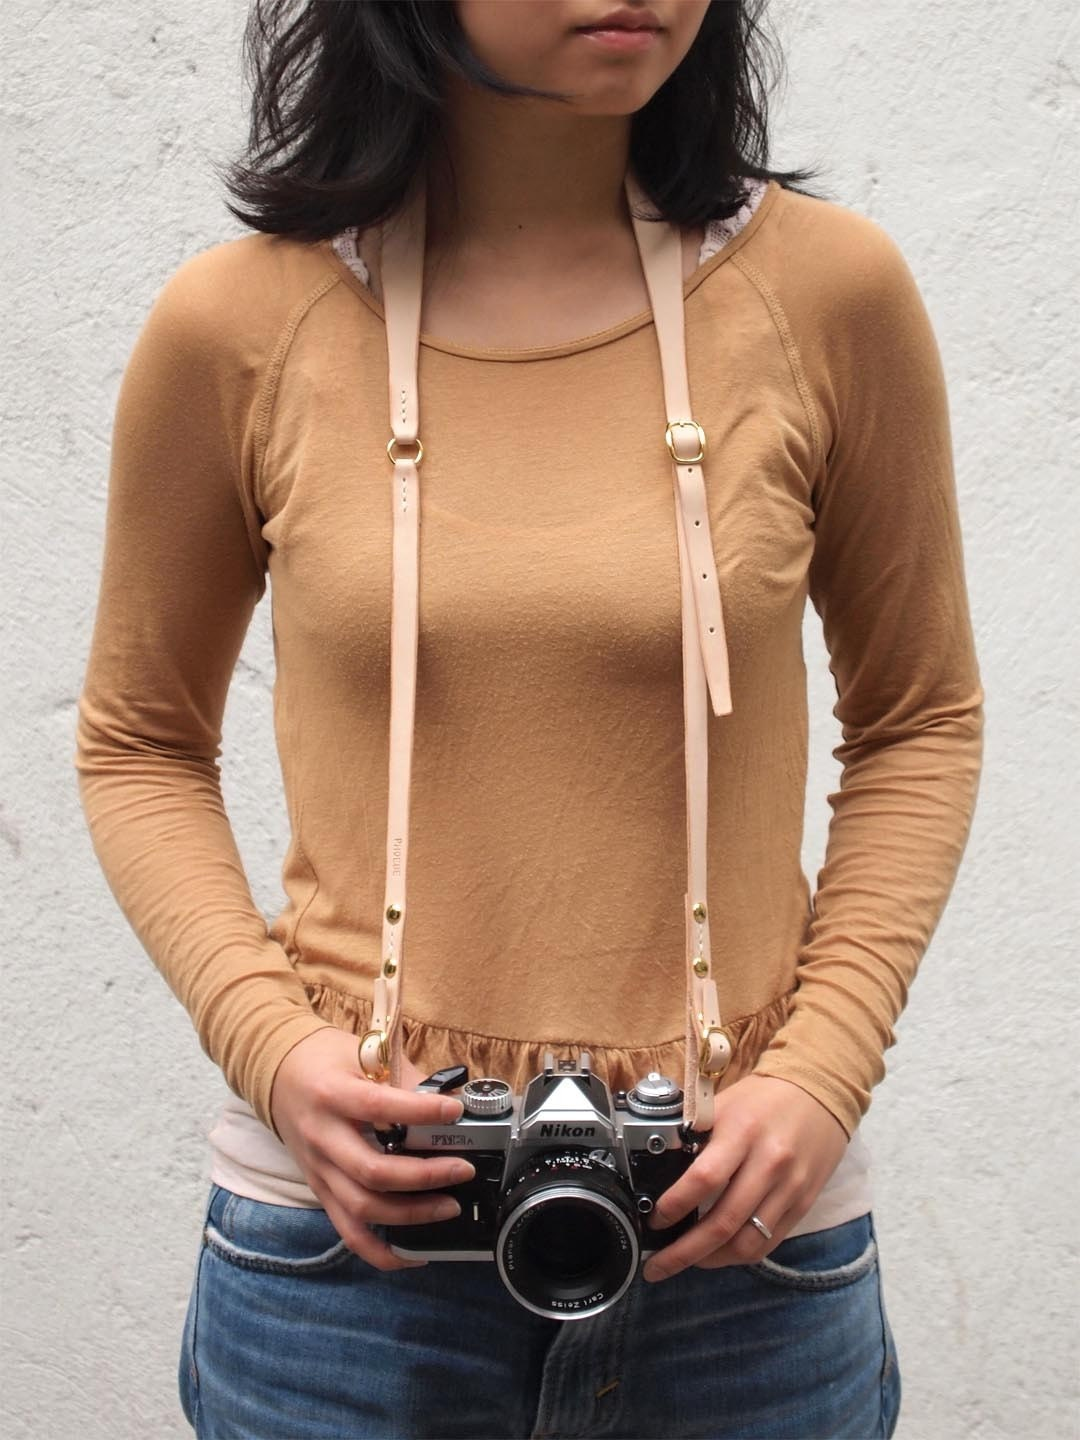 Personalized Camera Neck Strap with Adjustable Length - Leather - Nude - Hand Stitched